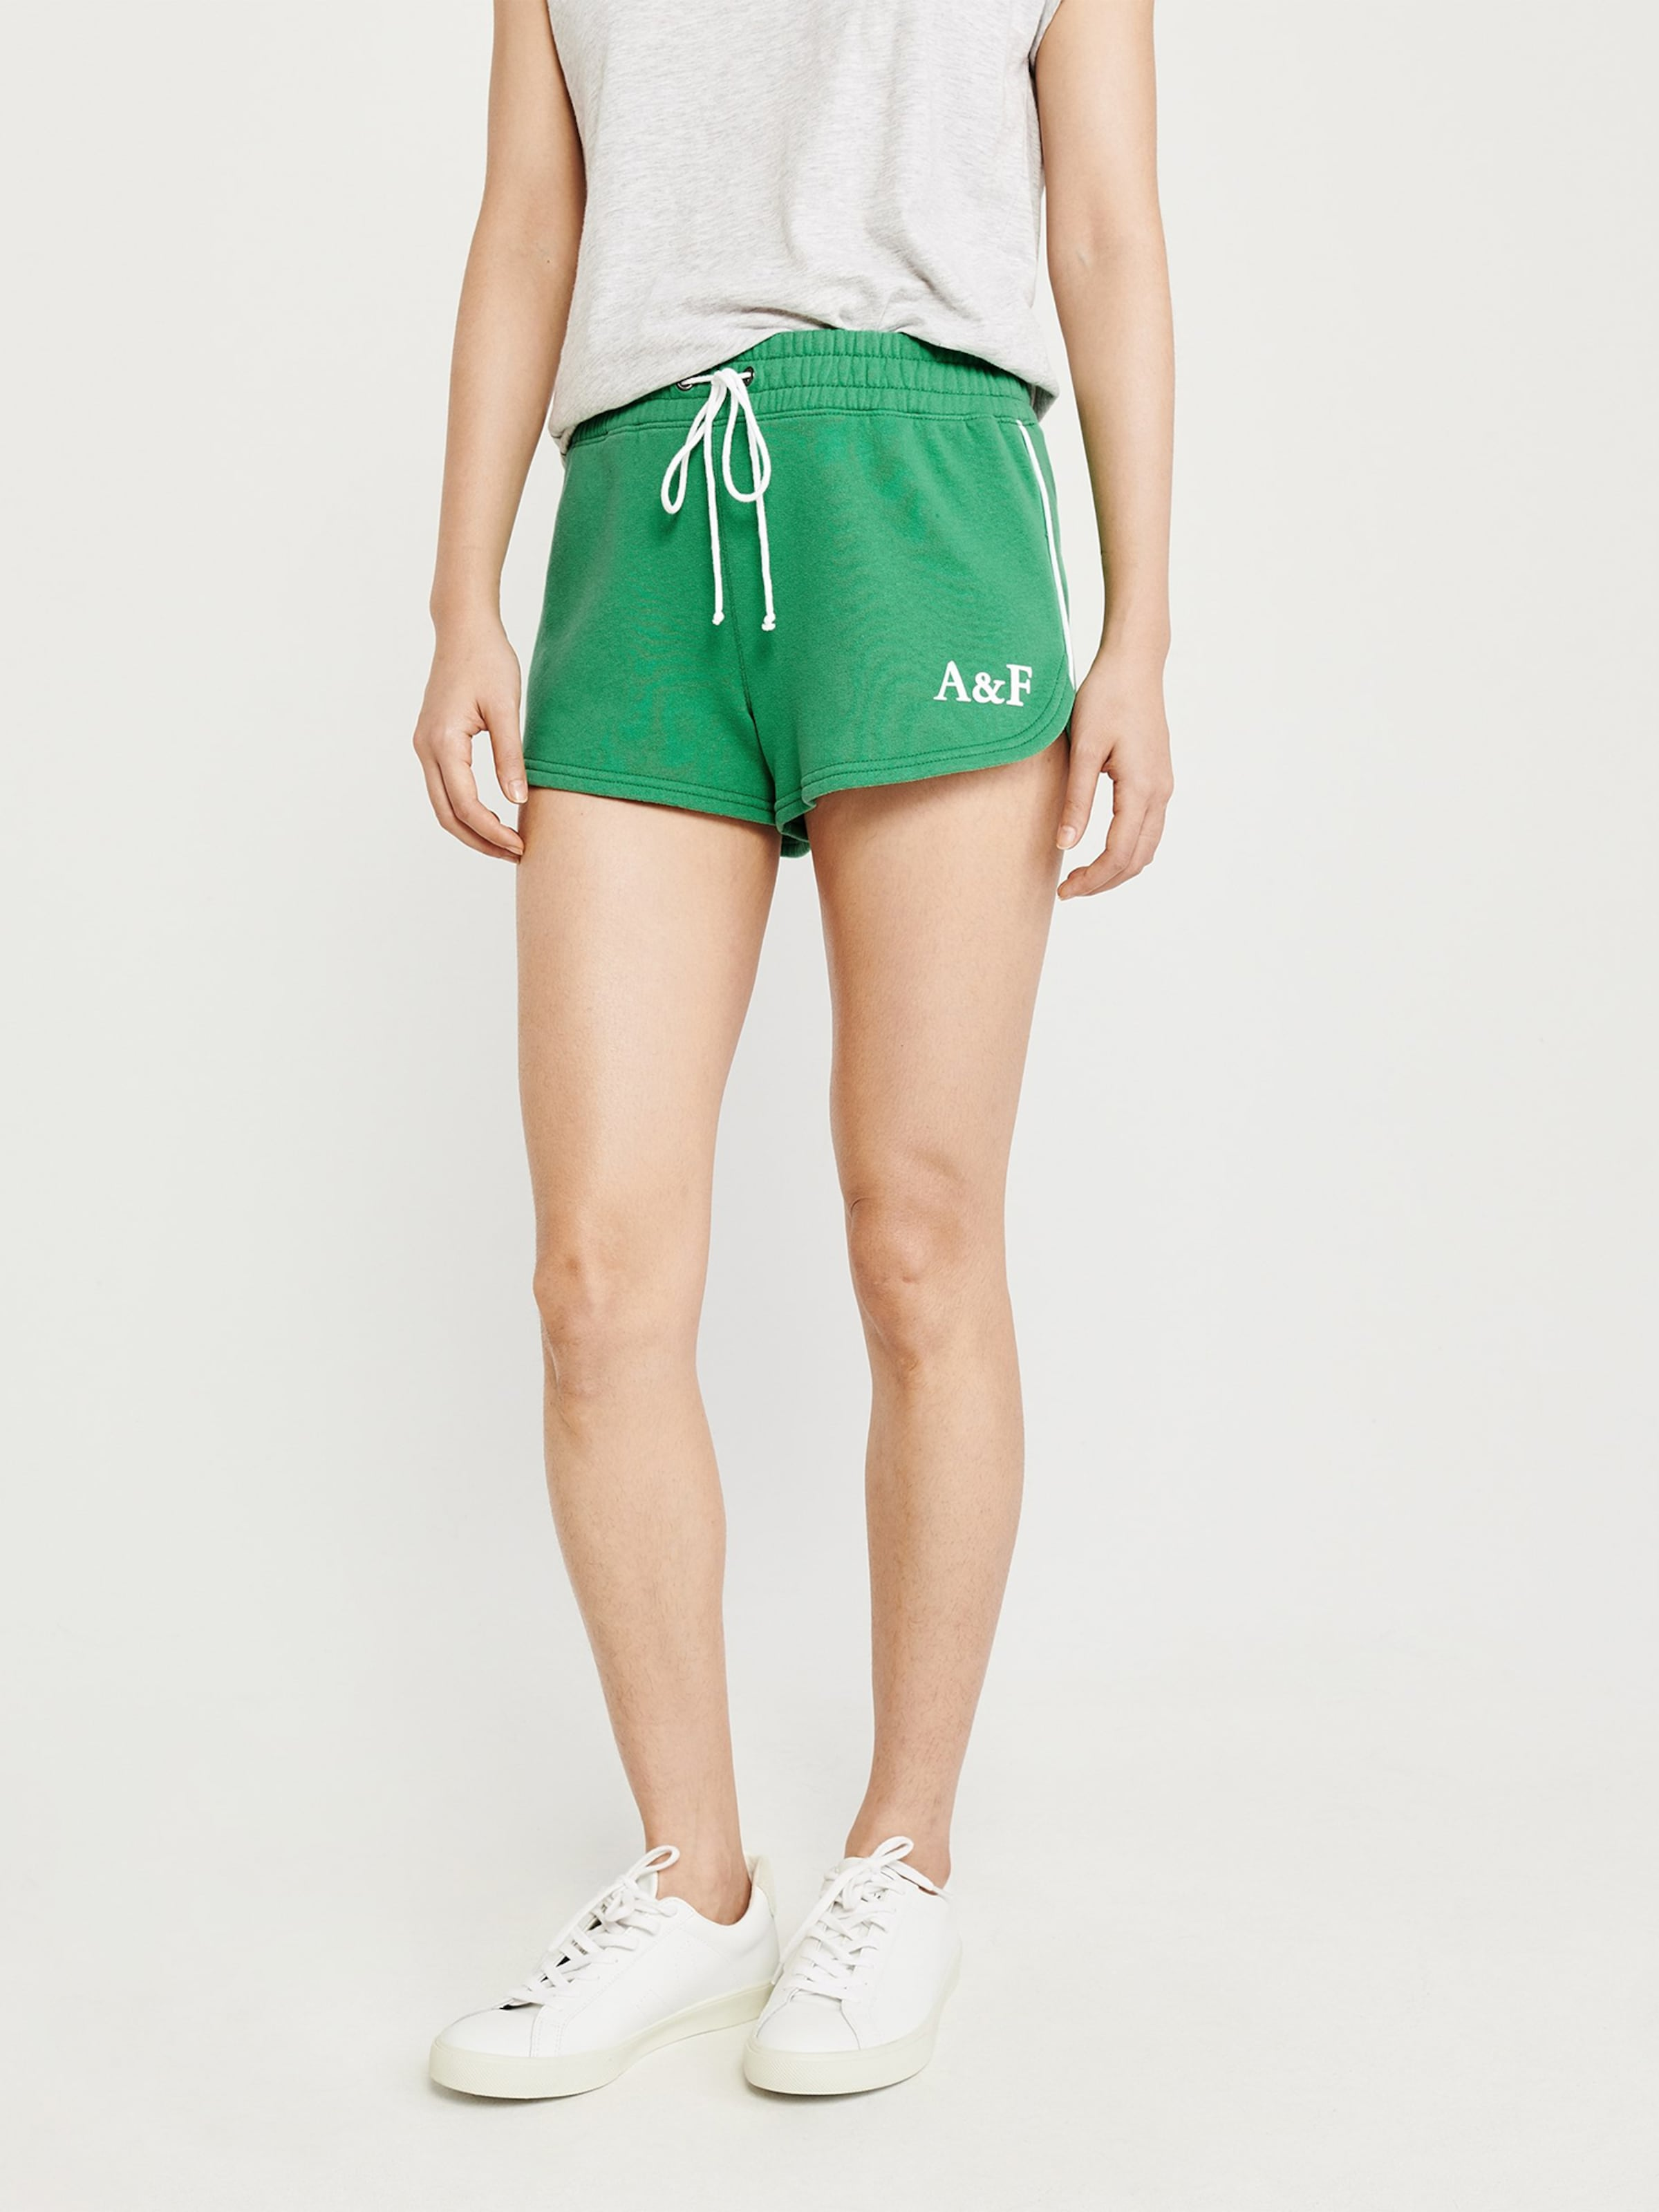 Shorts Abercrombieamp; In Shorts Grün Fitch In Abercrombieamp; Grün Fitch Abercrombieamp; rdoCxBeW